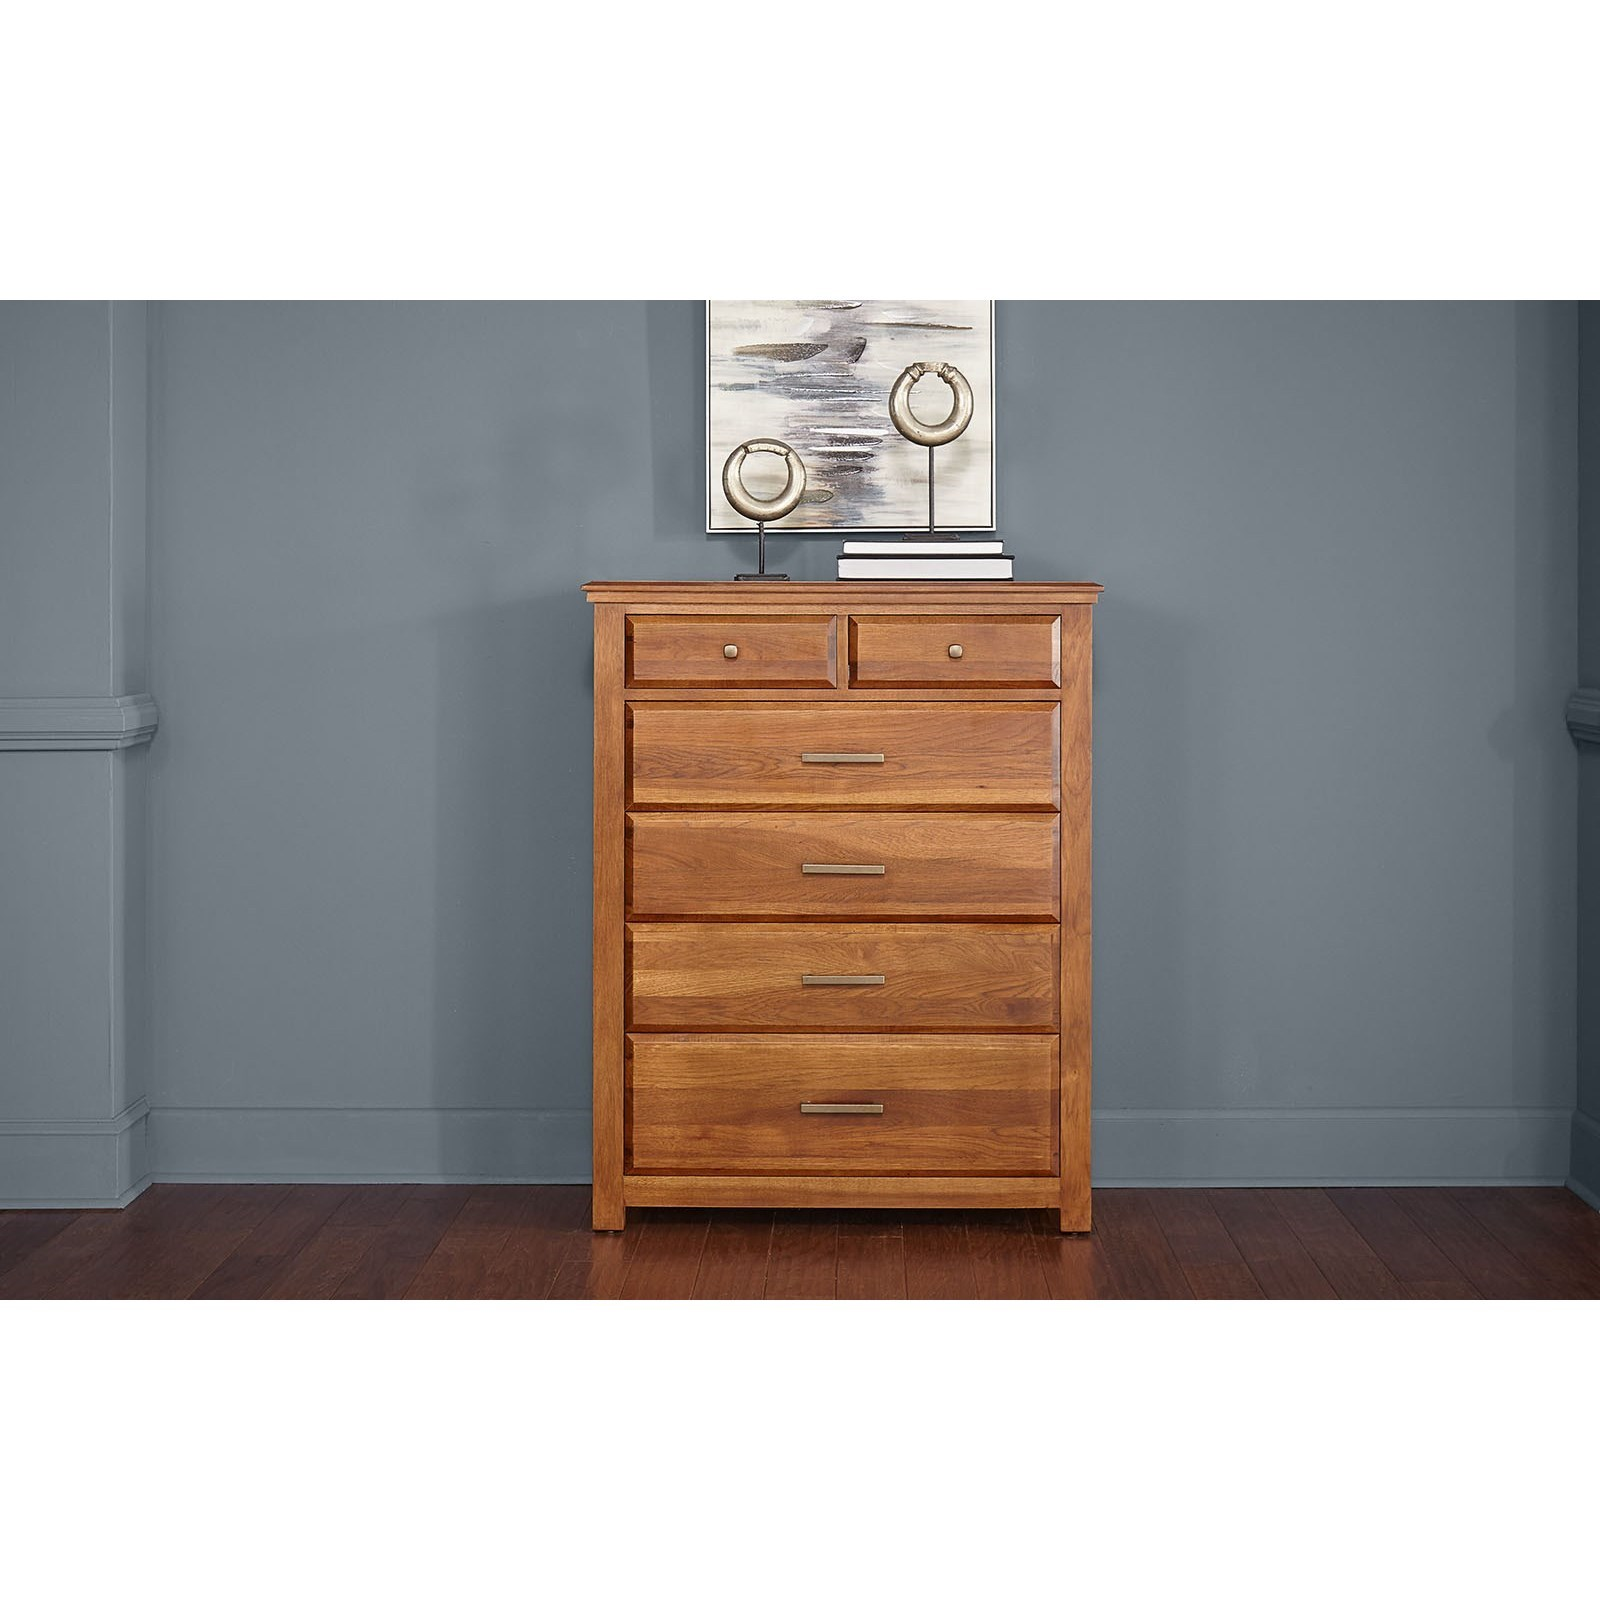 Camas 6-Drawer Chest by A-A at Walker's Furniture